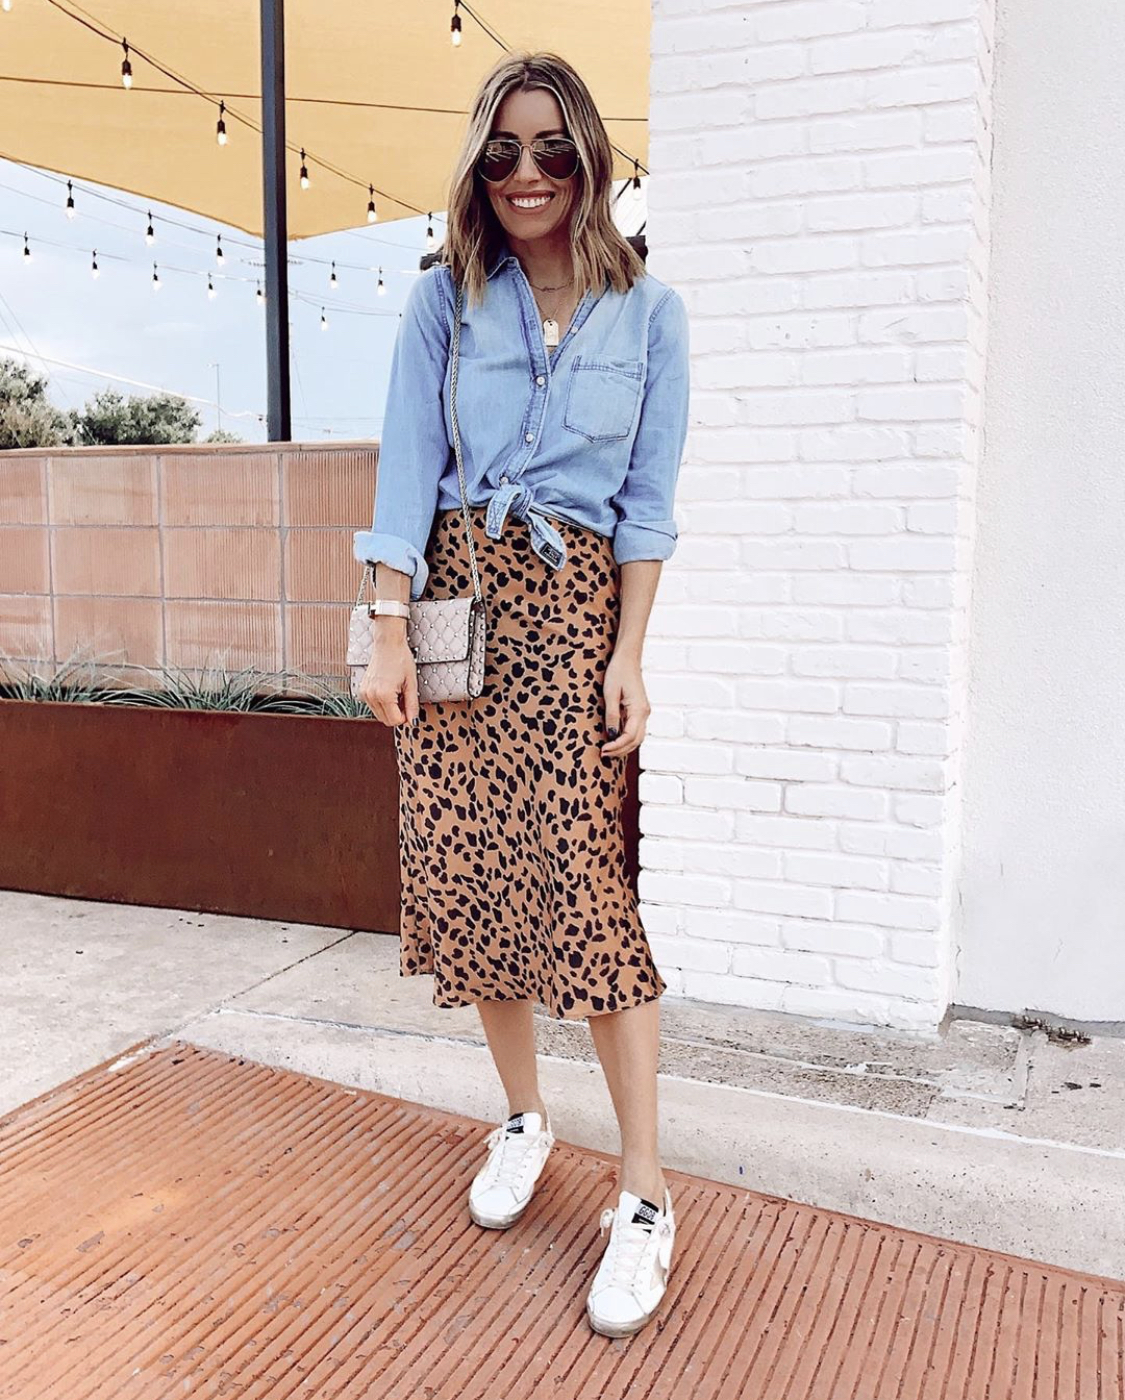 slip skirt with a front-tie shirt